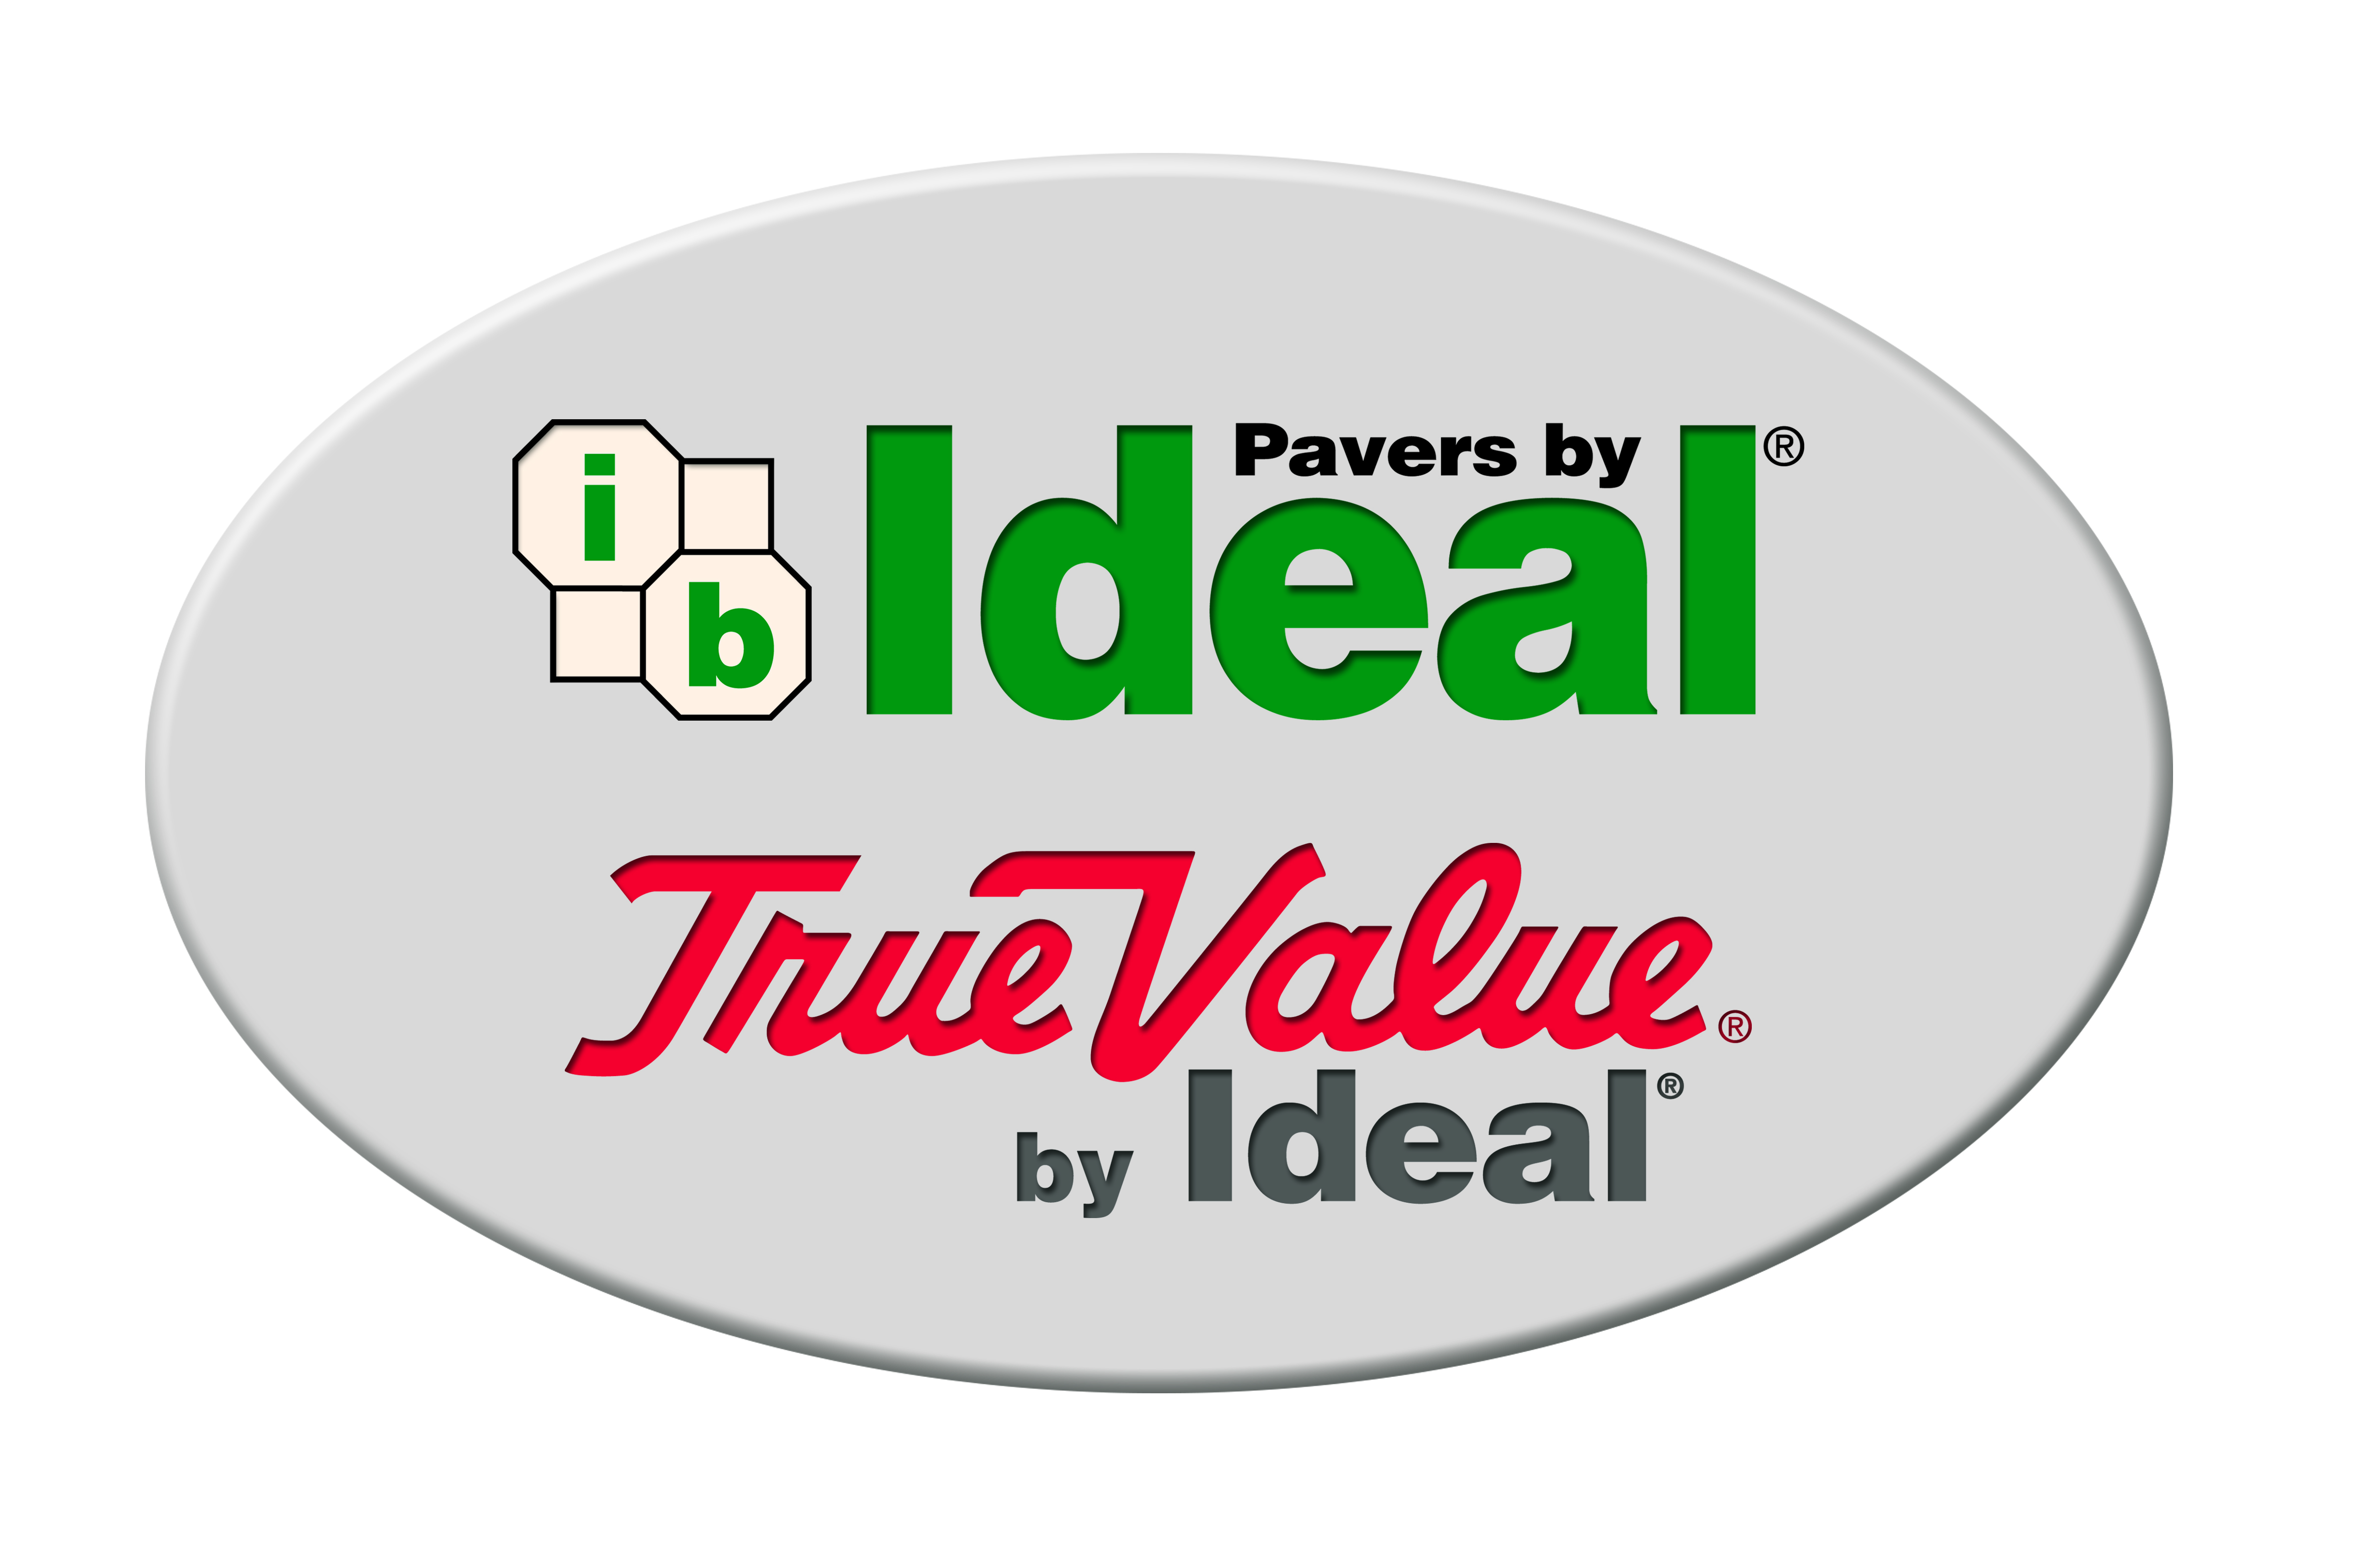 Ideal_combined_logos20161201143759